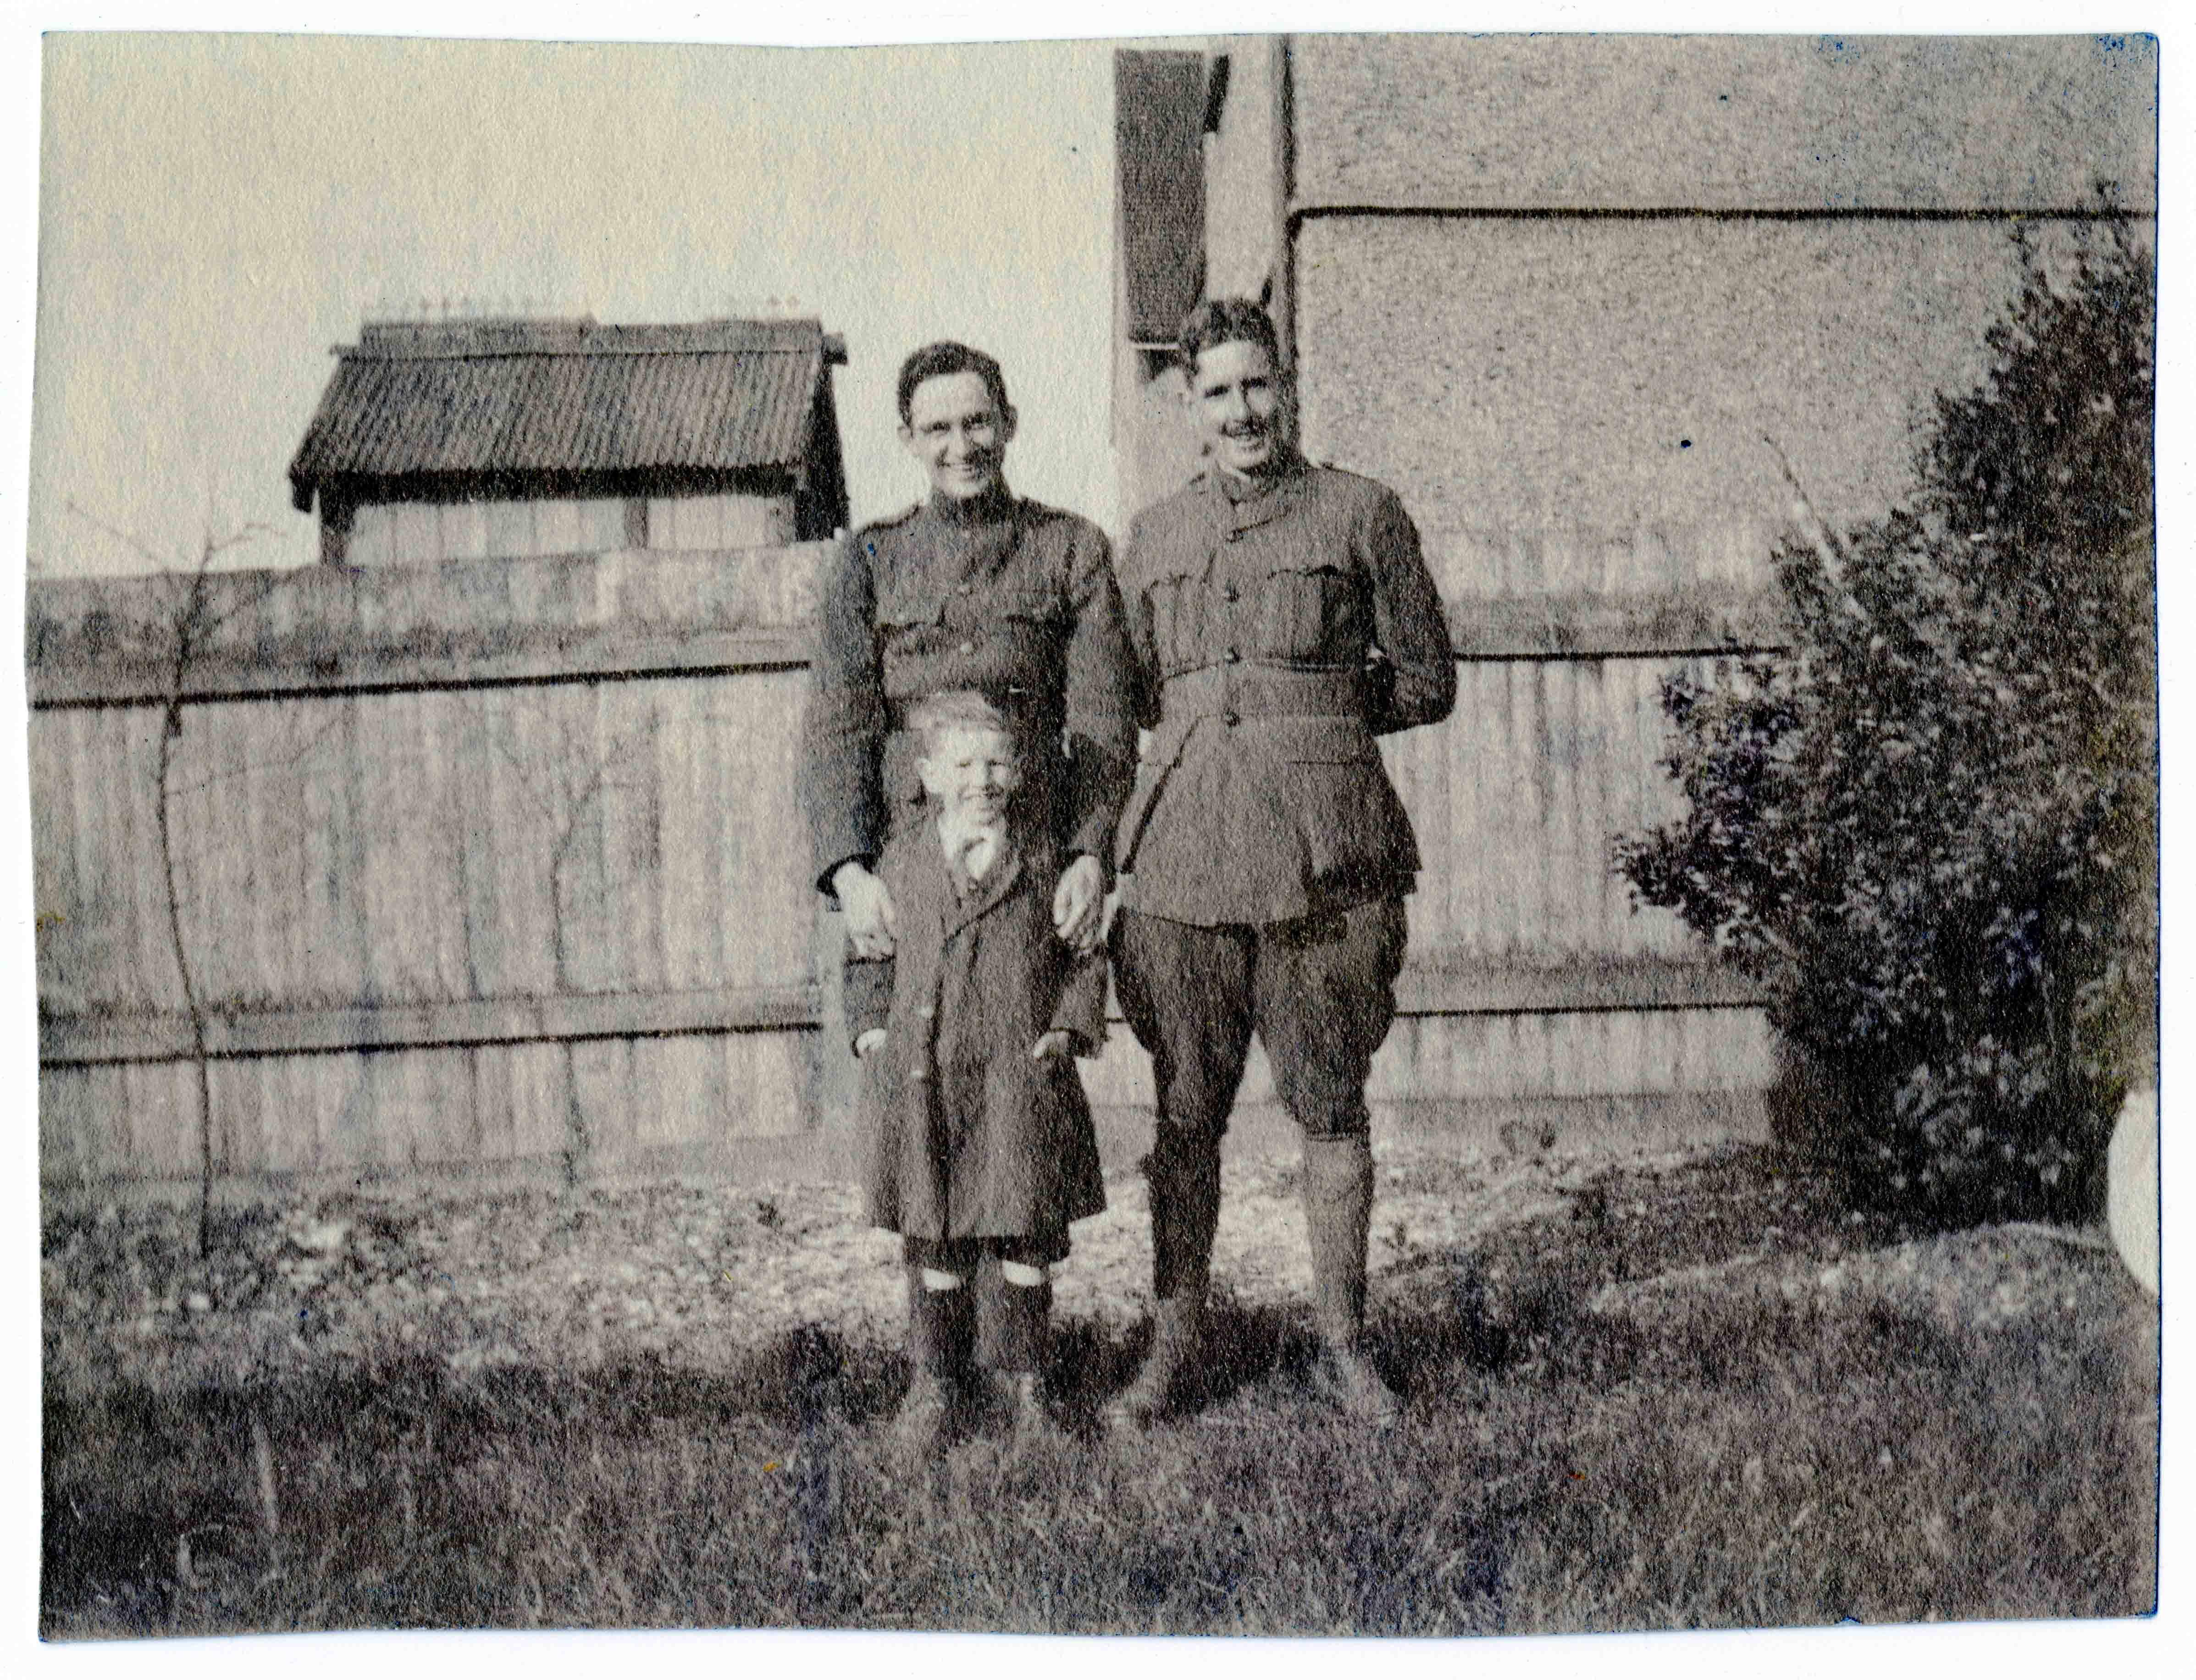 A photo of two men in uniform, but without pilots' wings, outdoors, apparently in the backyard of a house, standing in front of a boy, about seven years old.